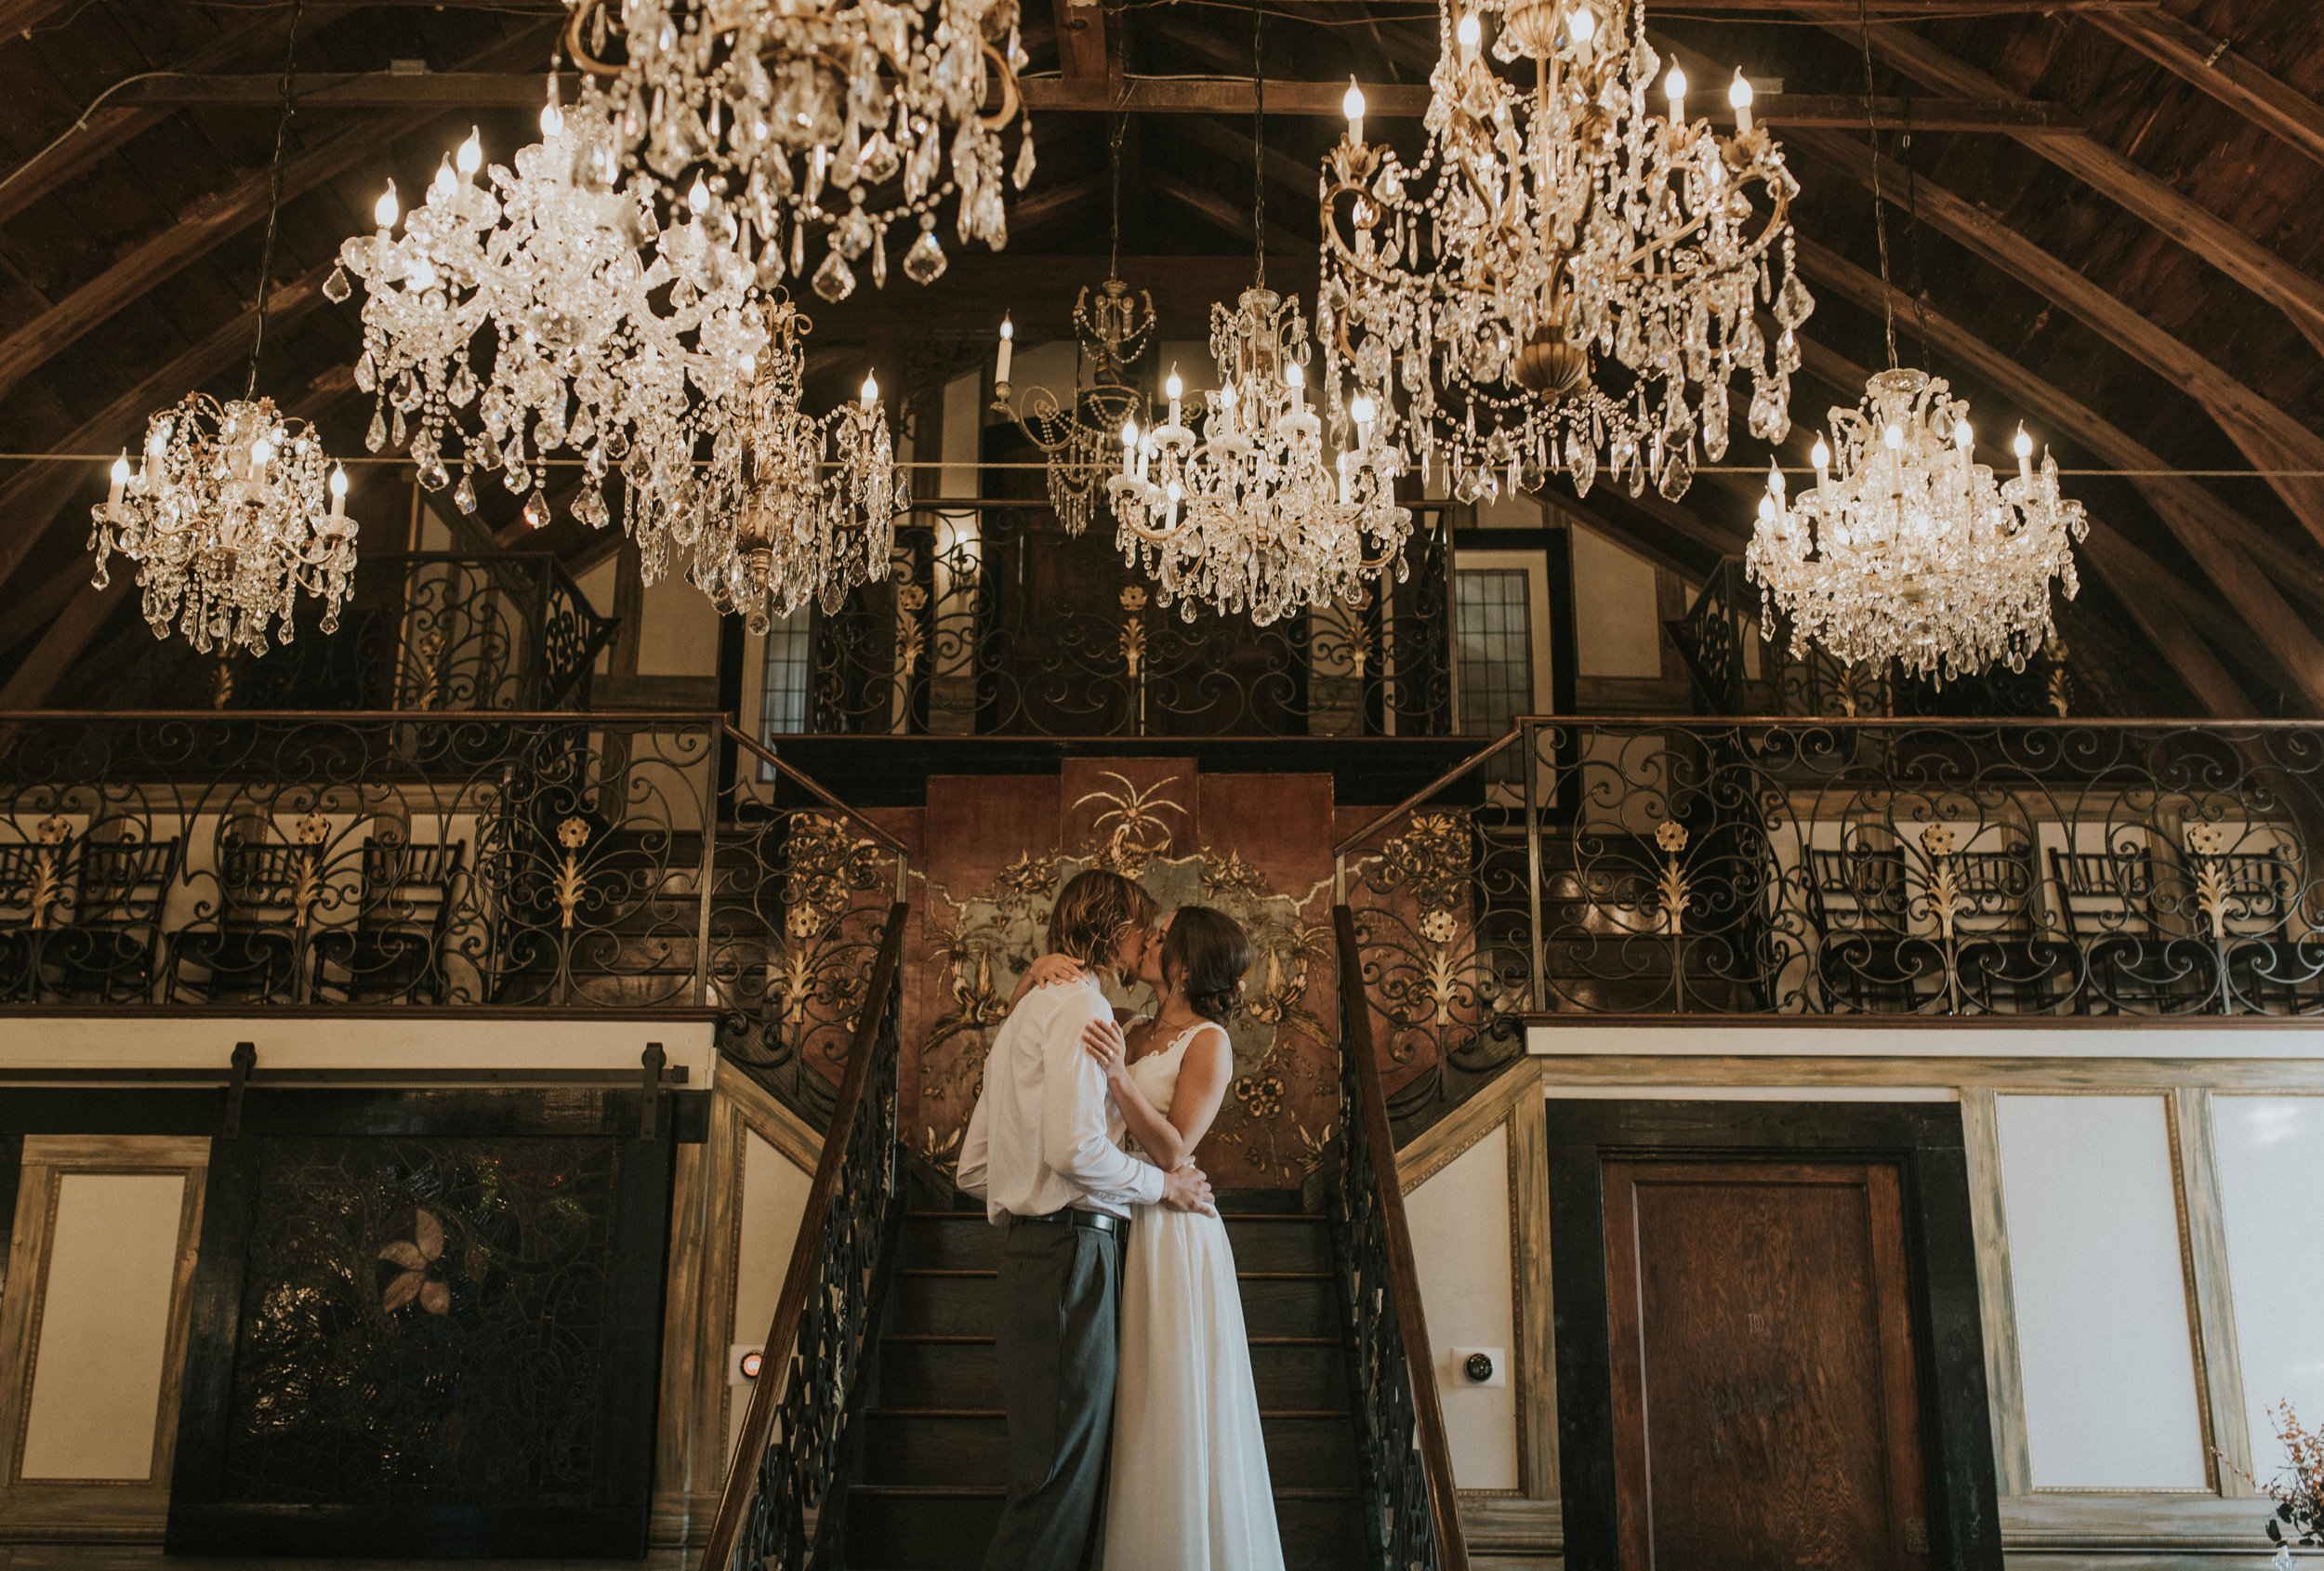 Vintage ceremony in the Chandelier Barn at Lionsgatevent Center